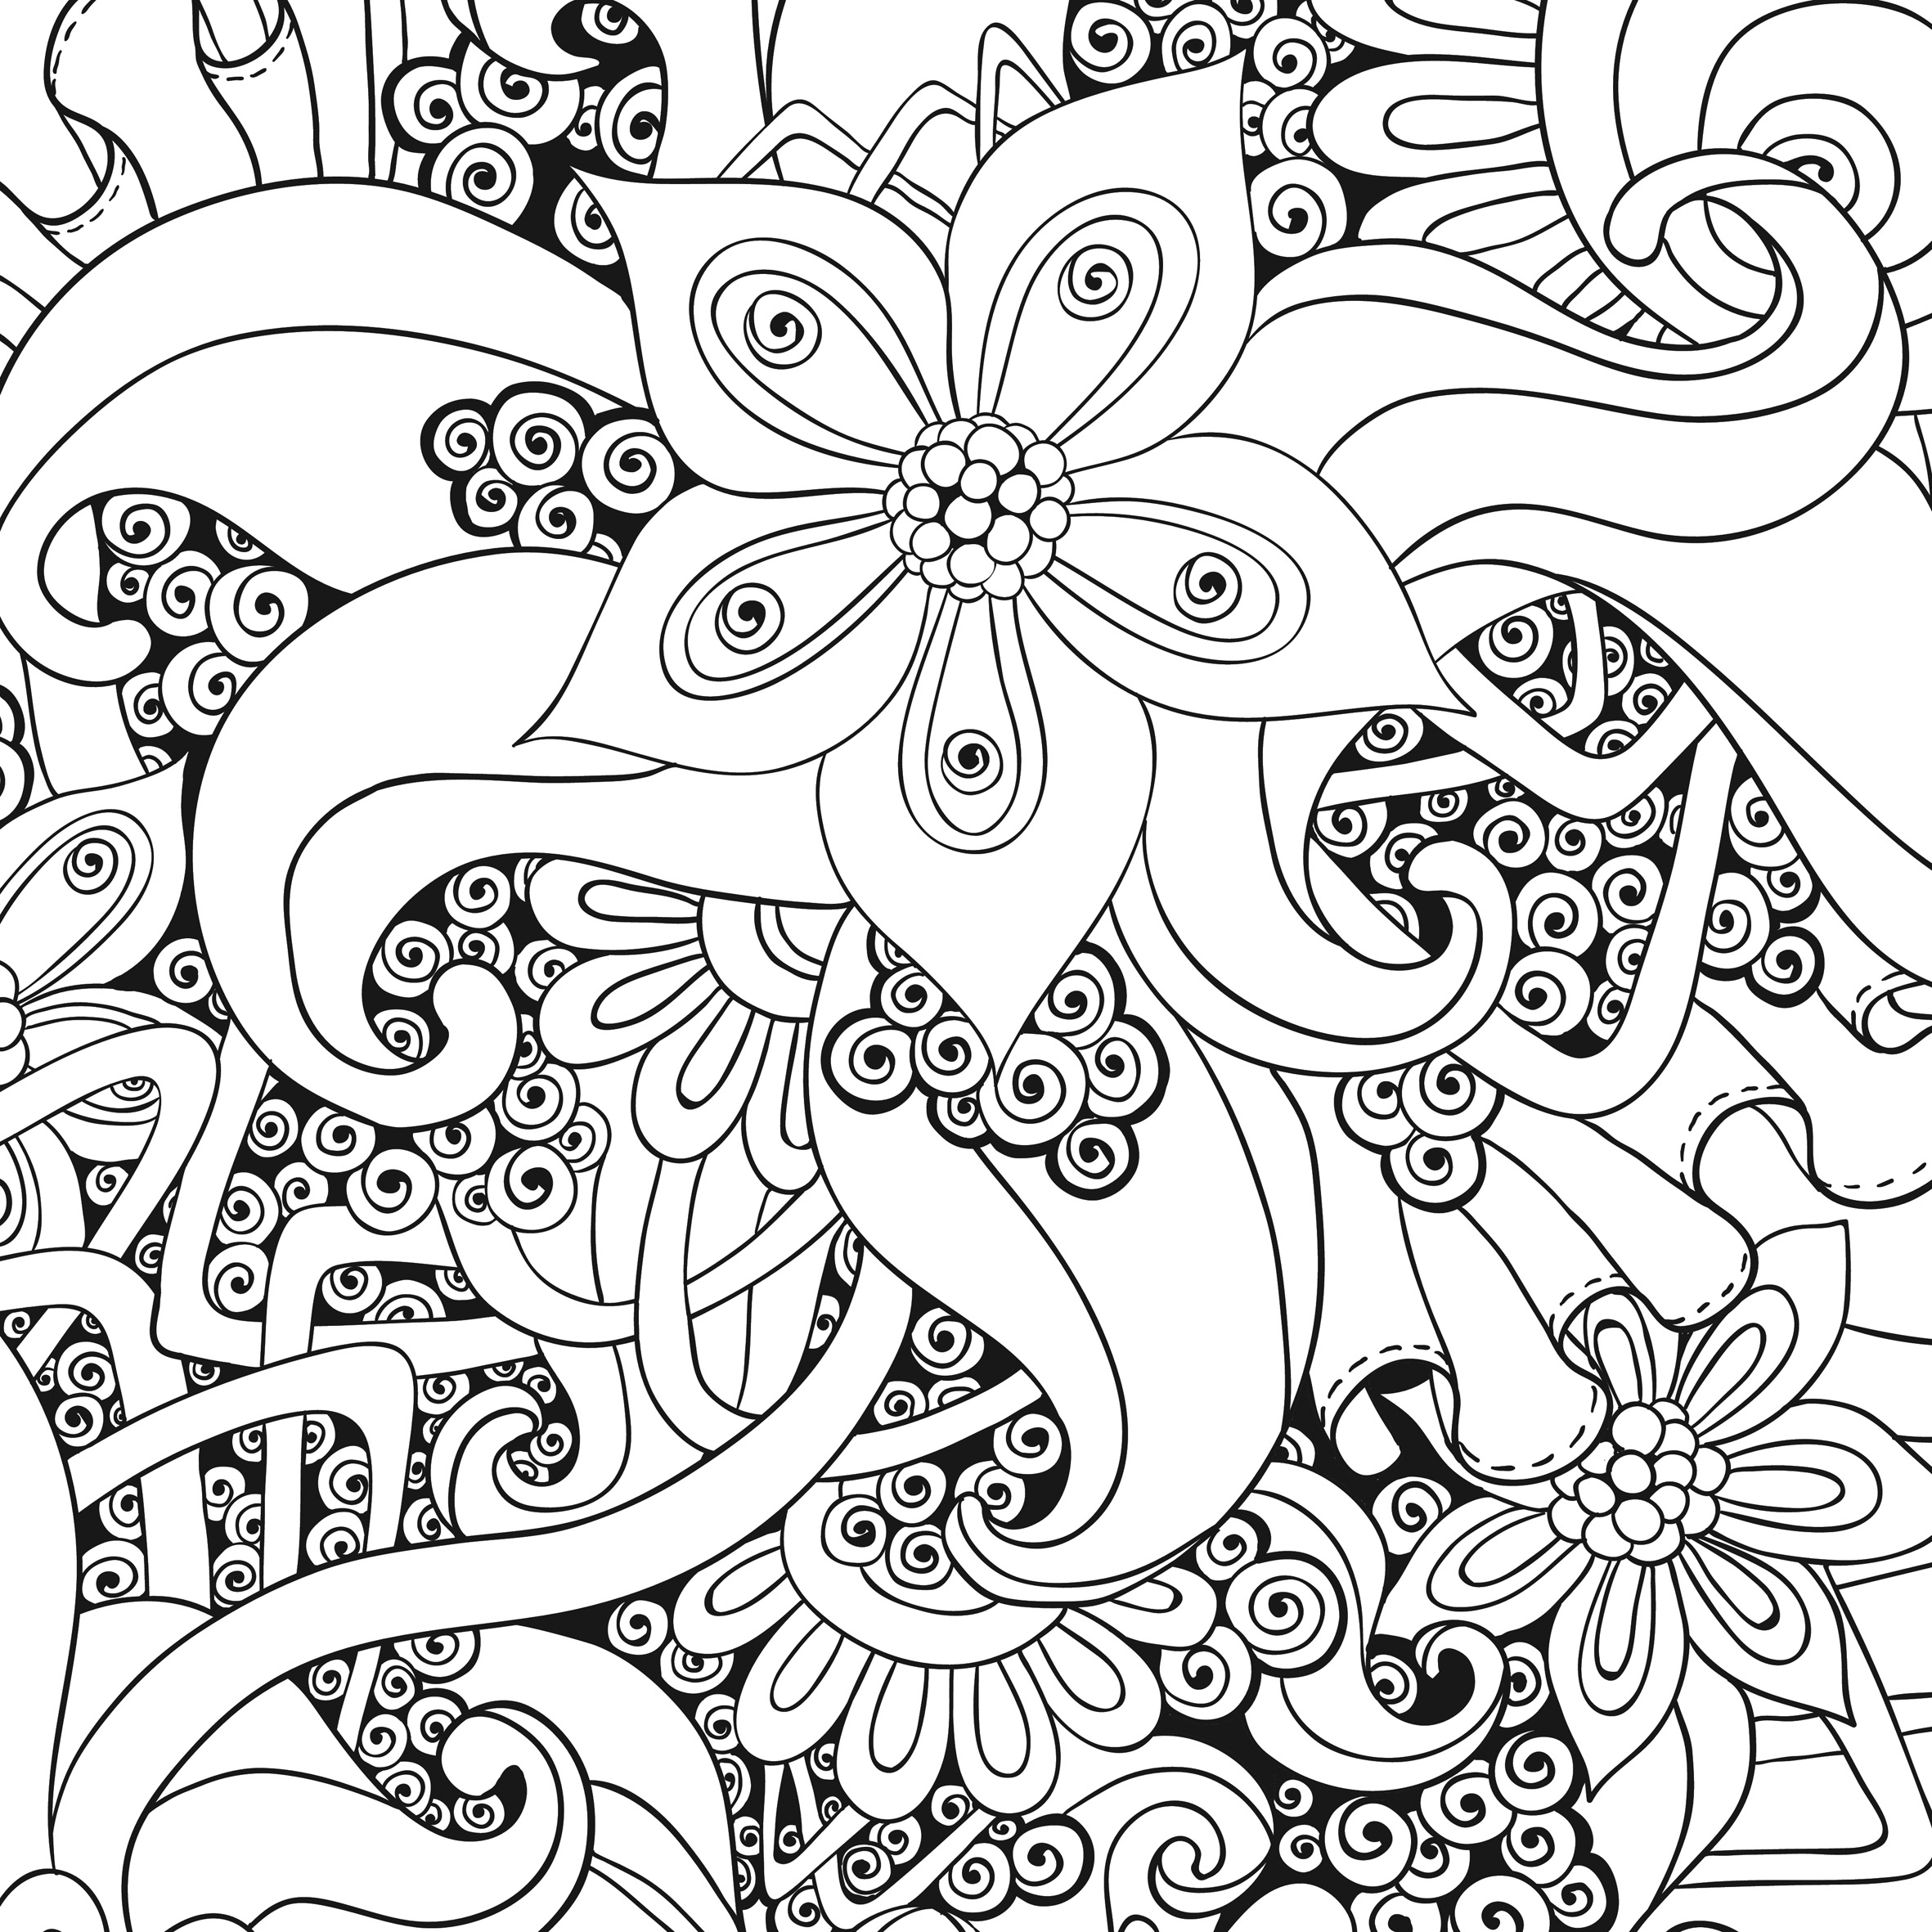 coloriage anti stress à imprimer facile